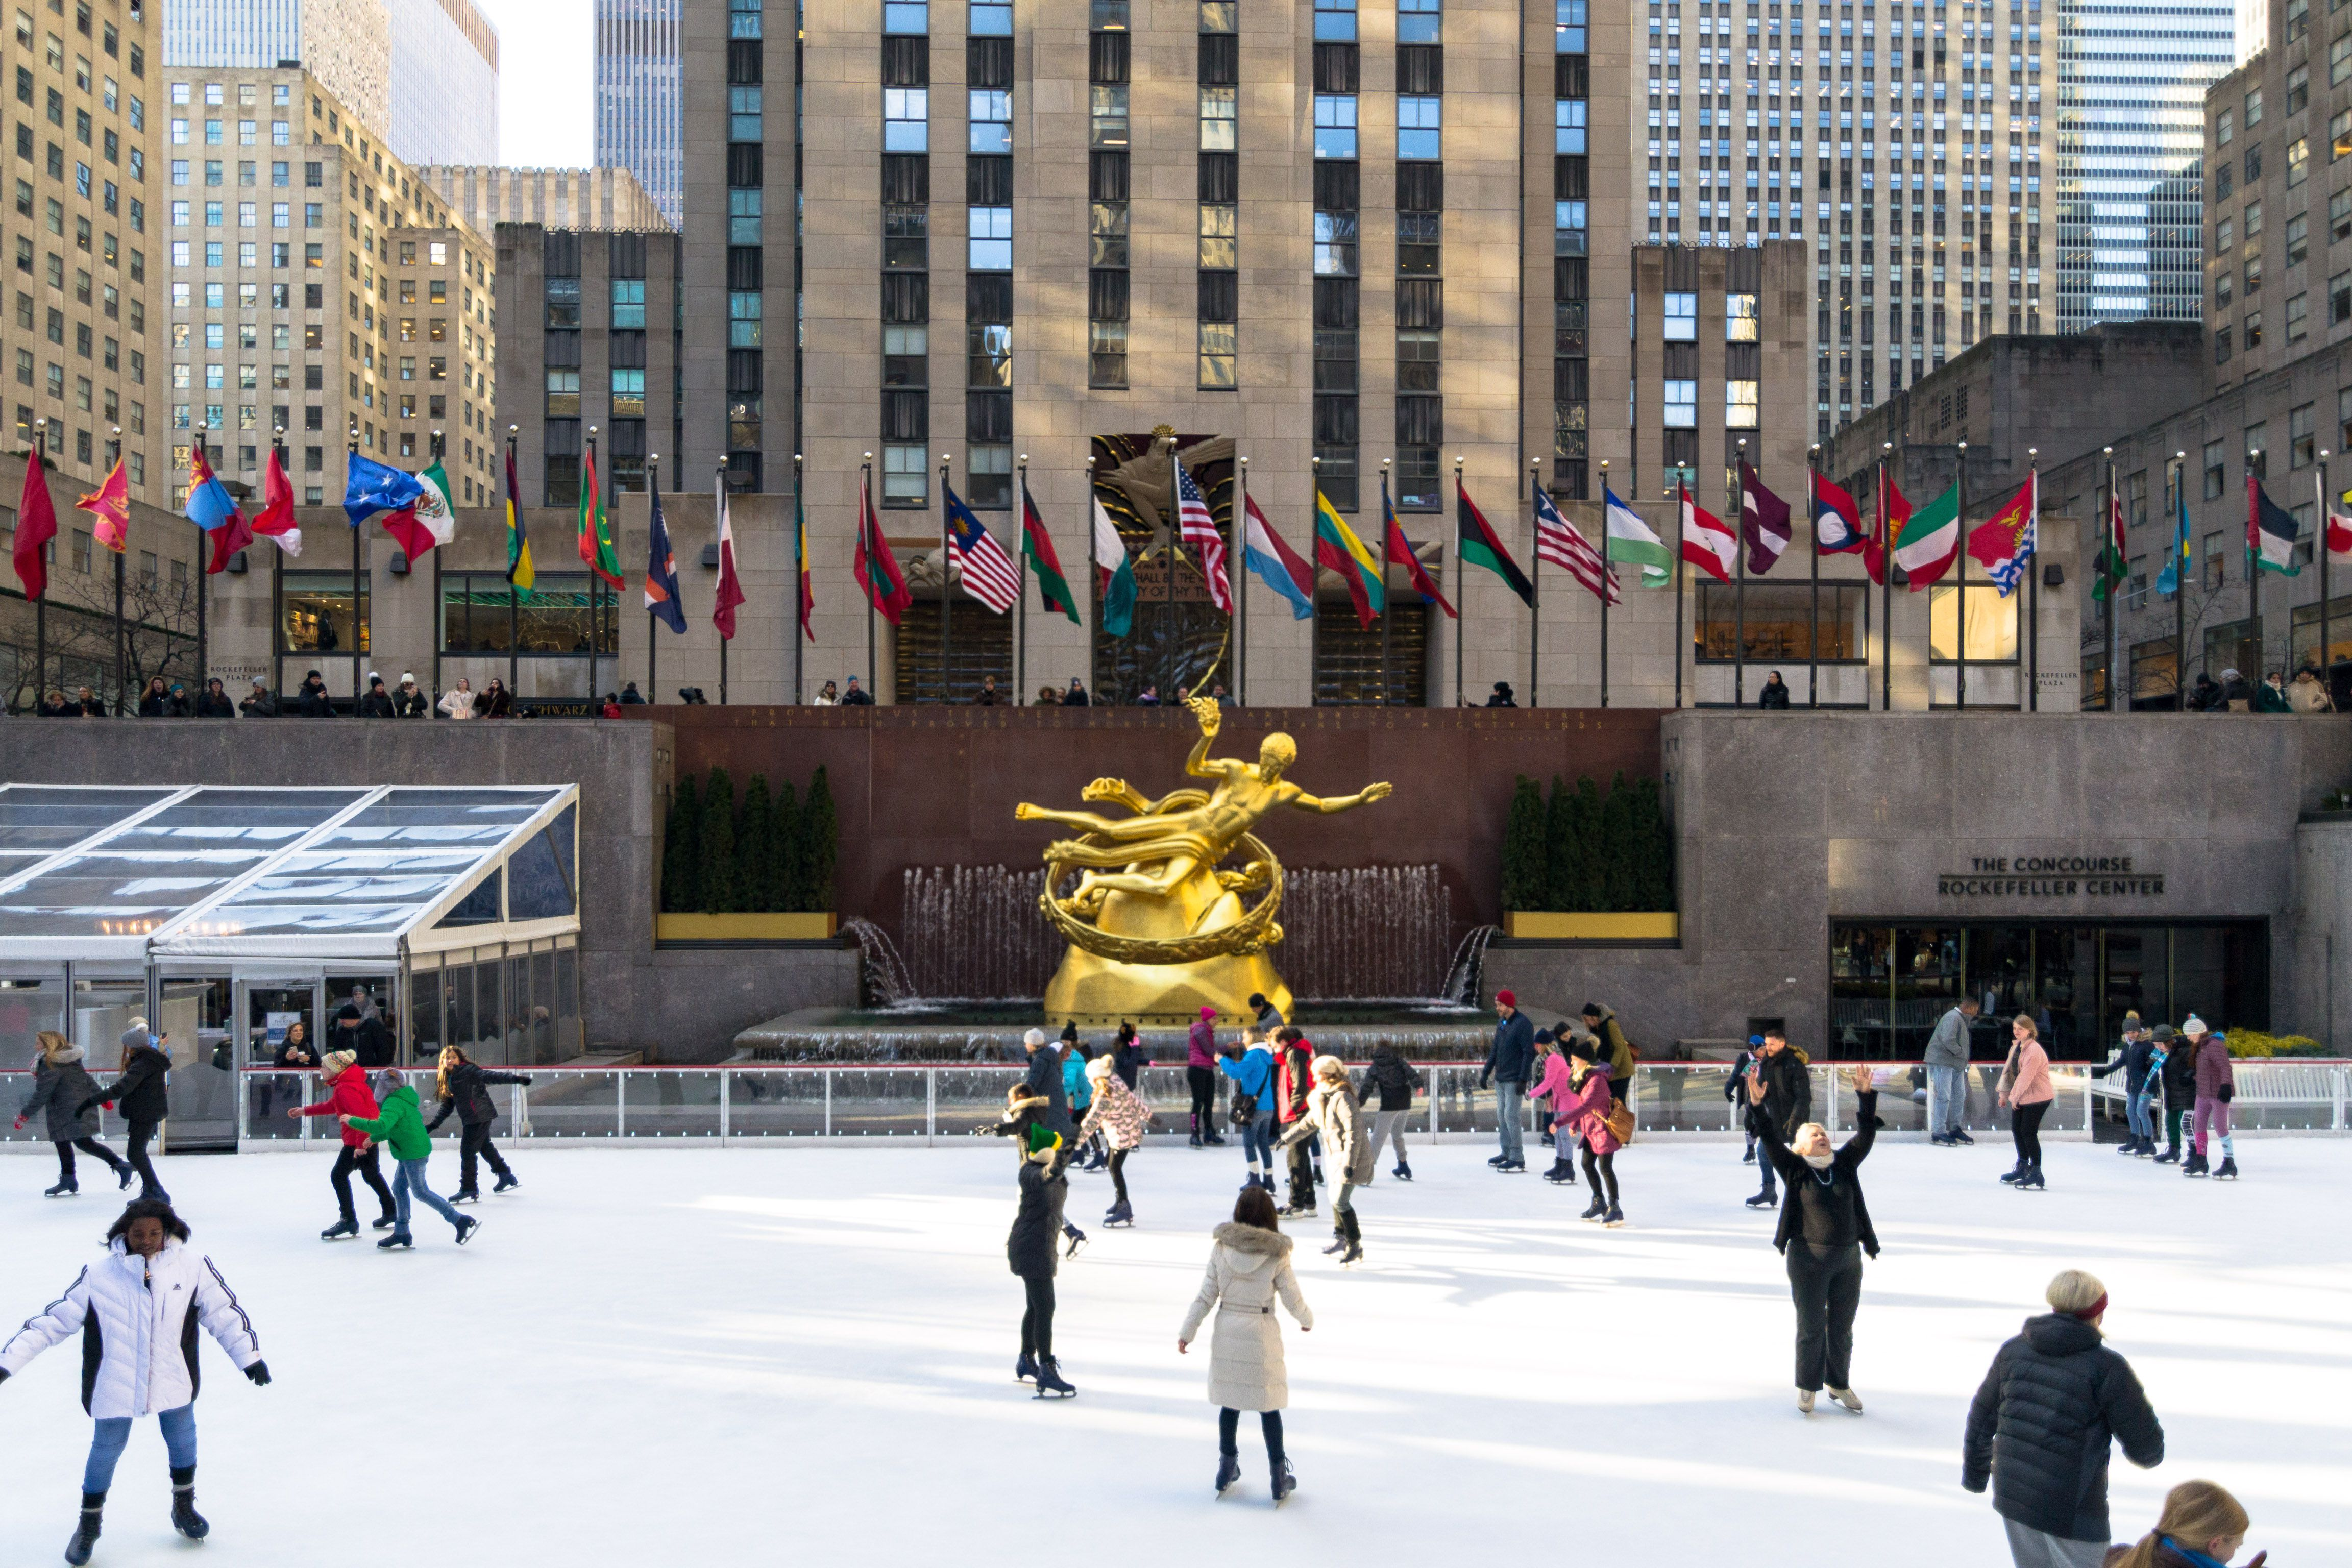 Rock Center Cafe Christmas 2020 Guide to Skating at the Rockefeller Center Ice Rink